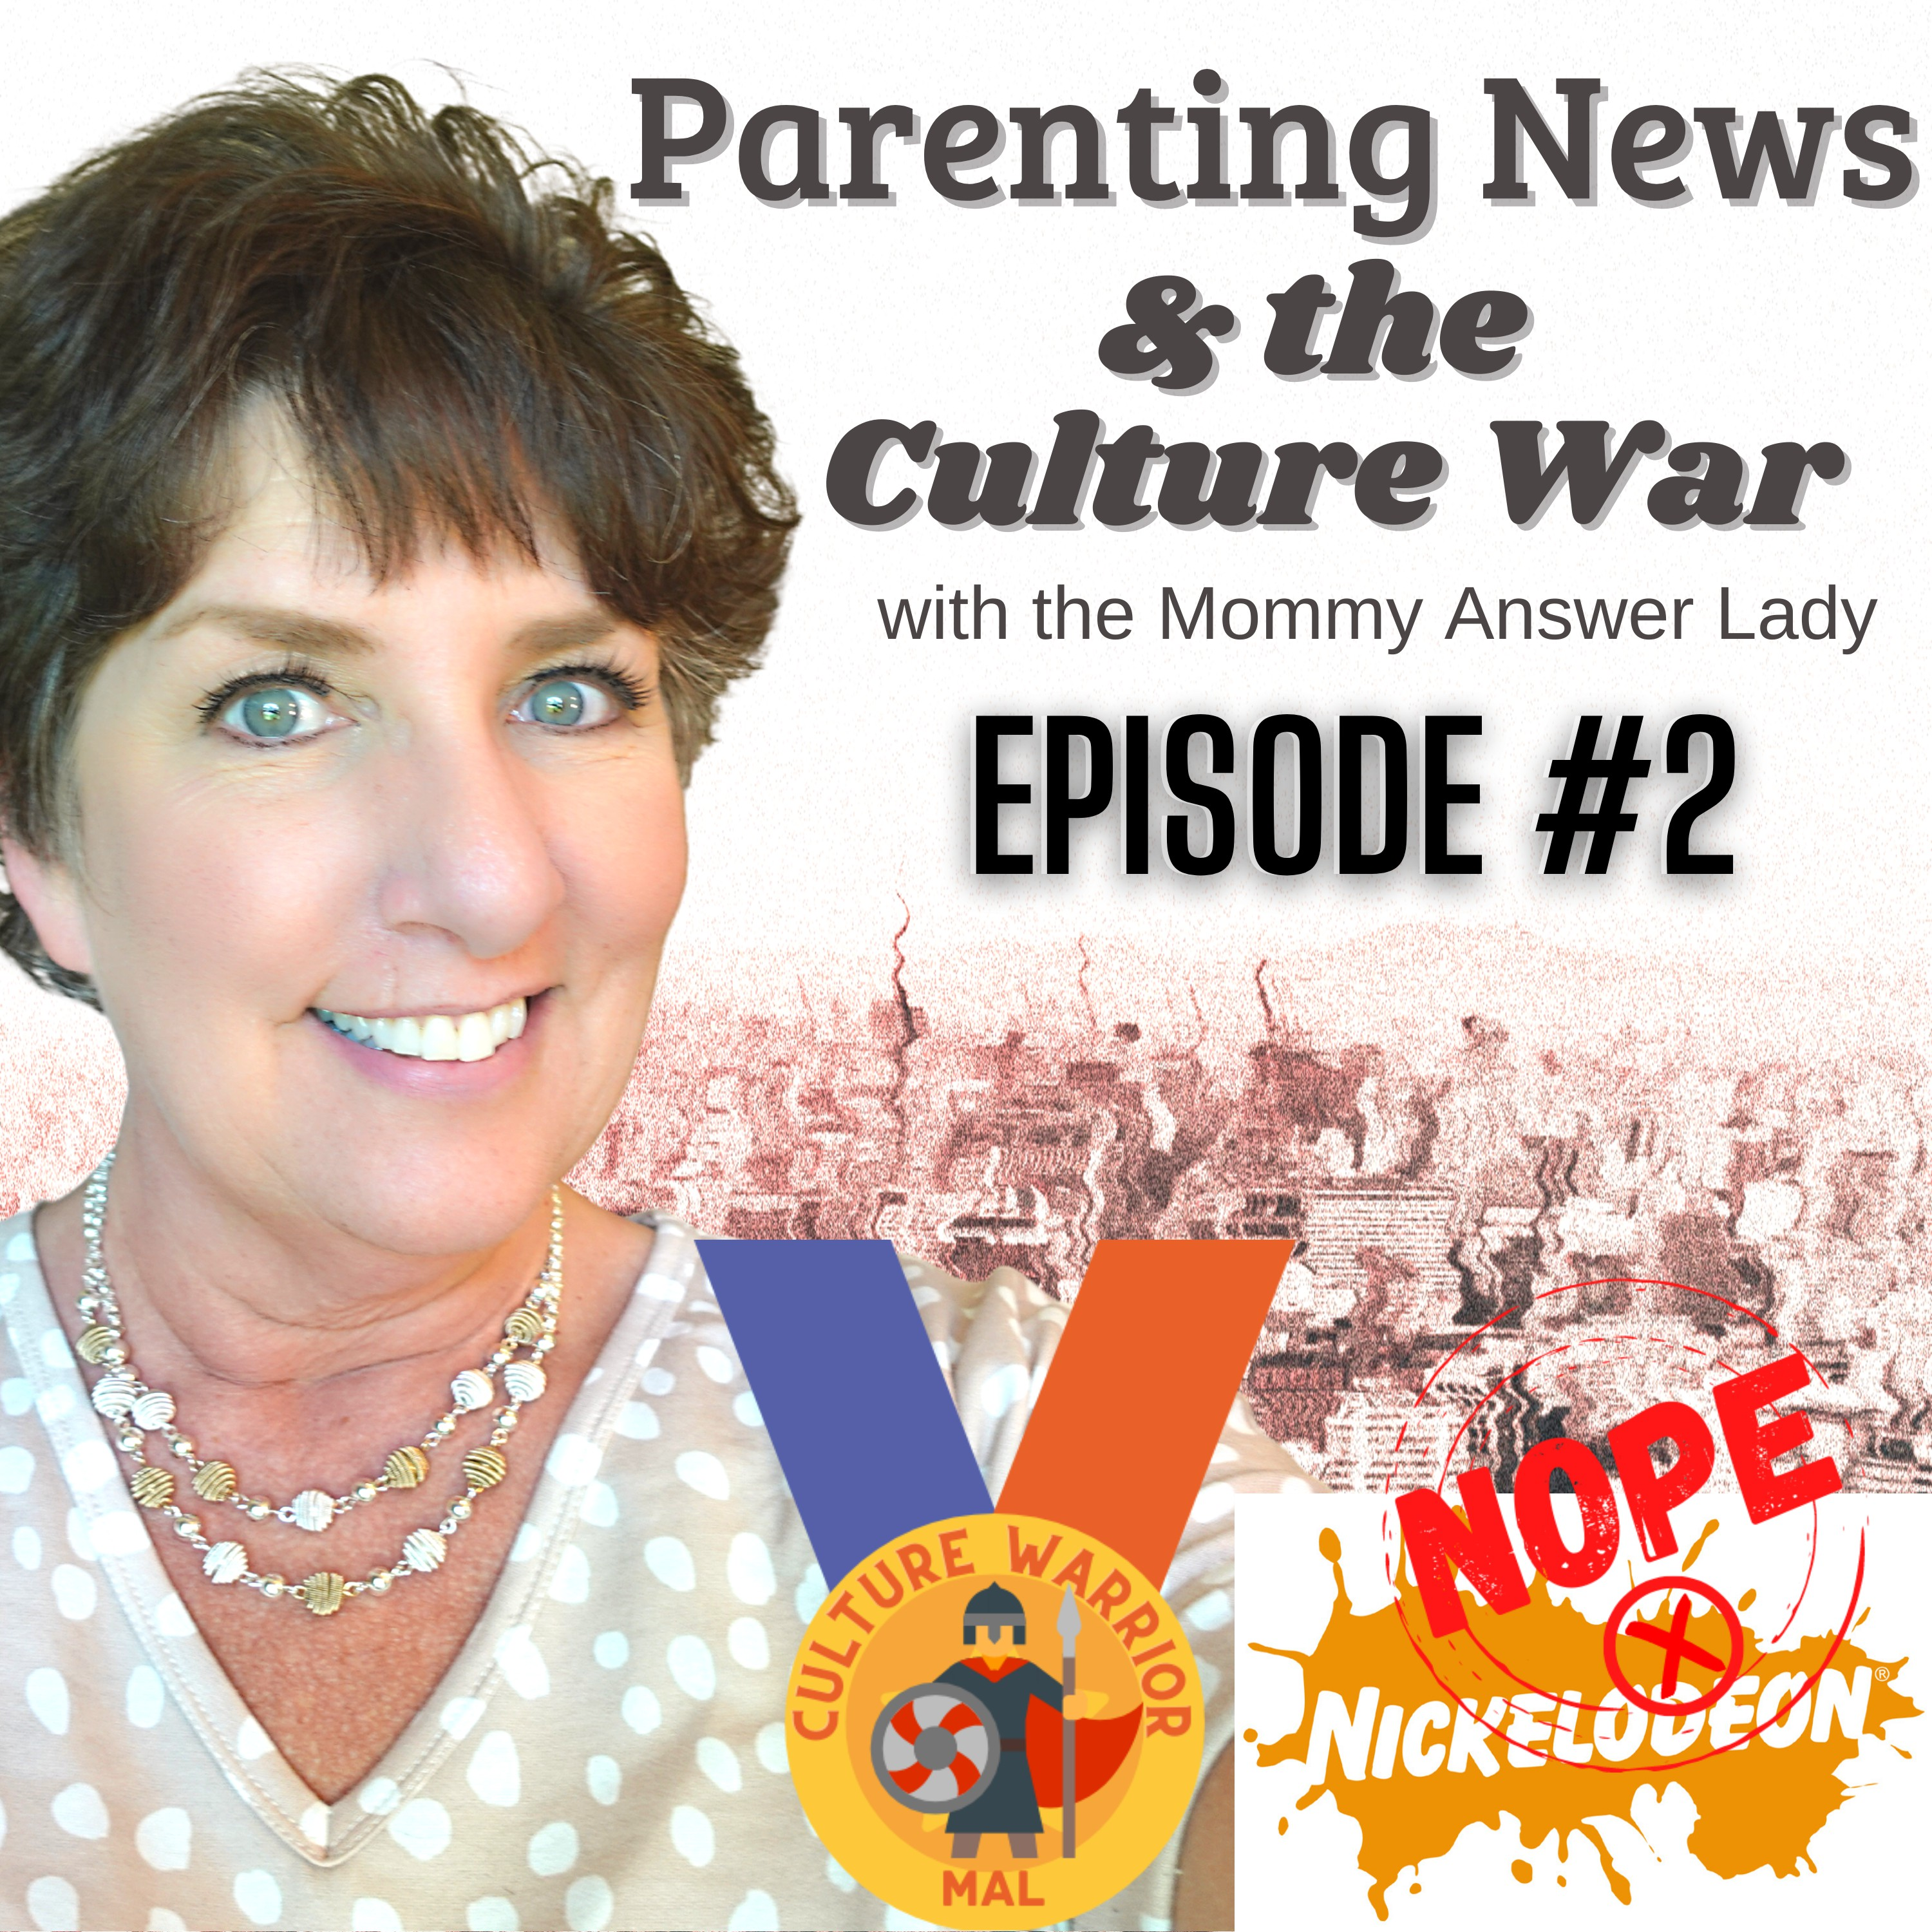 Parenting News & the Culture War - Mommy Answer Lady